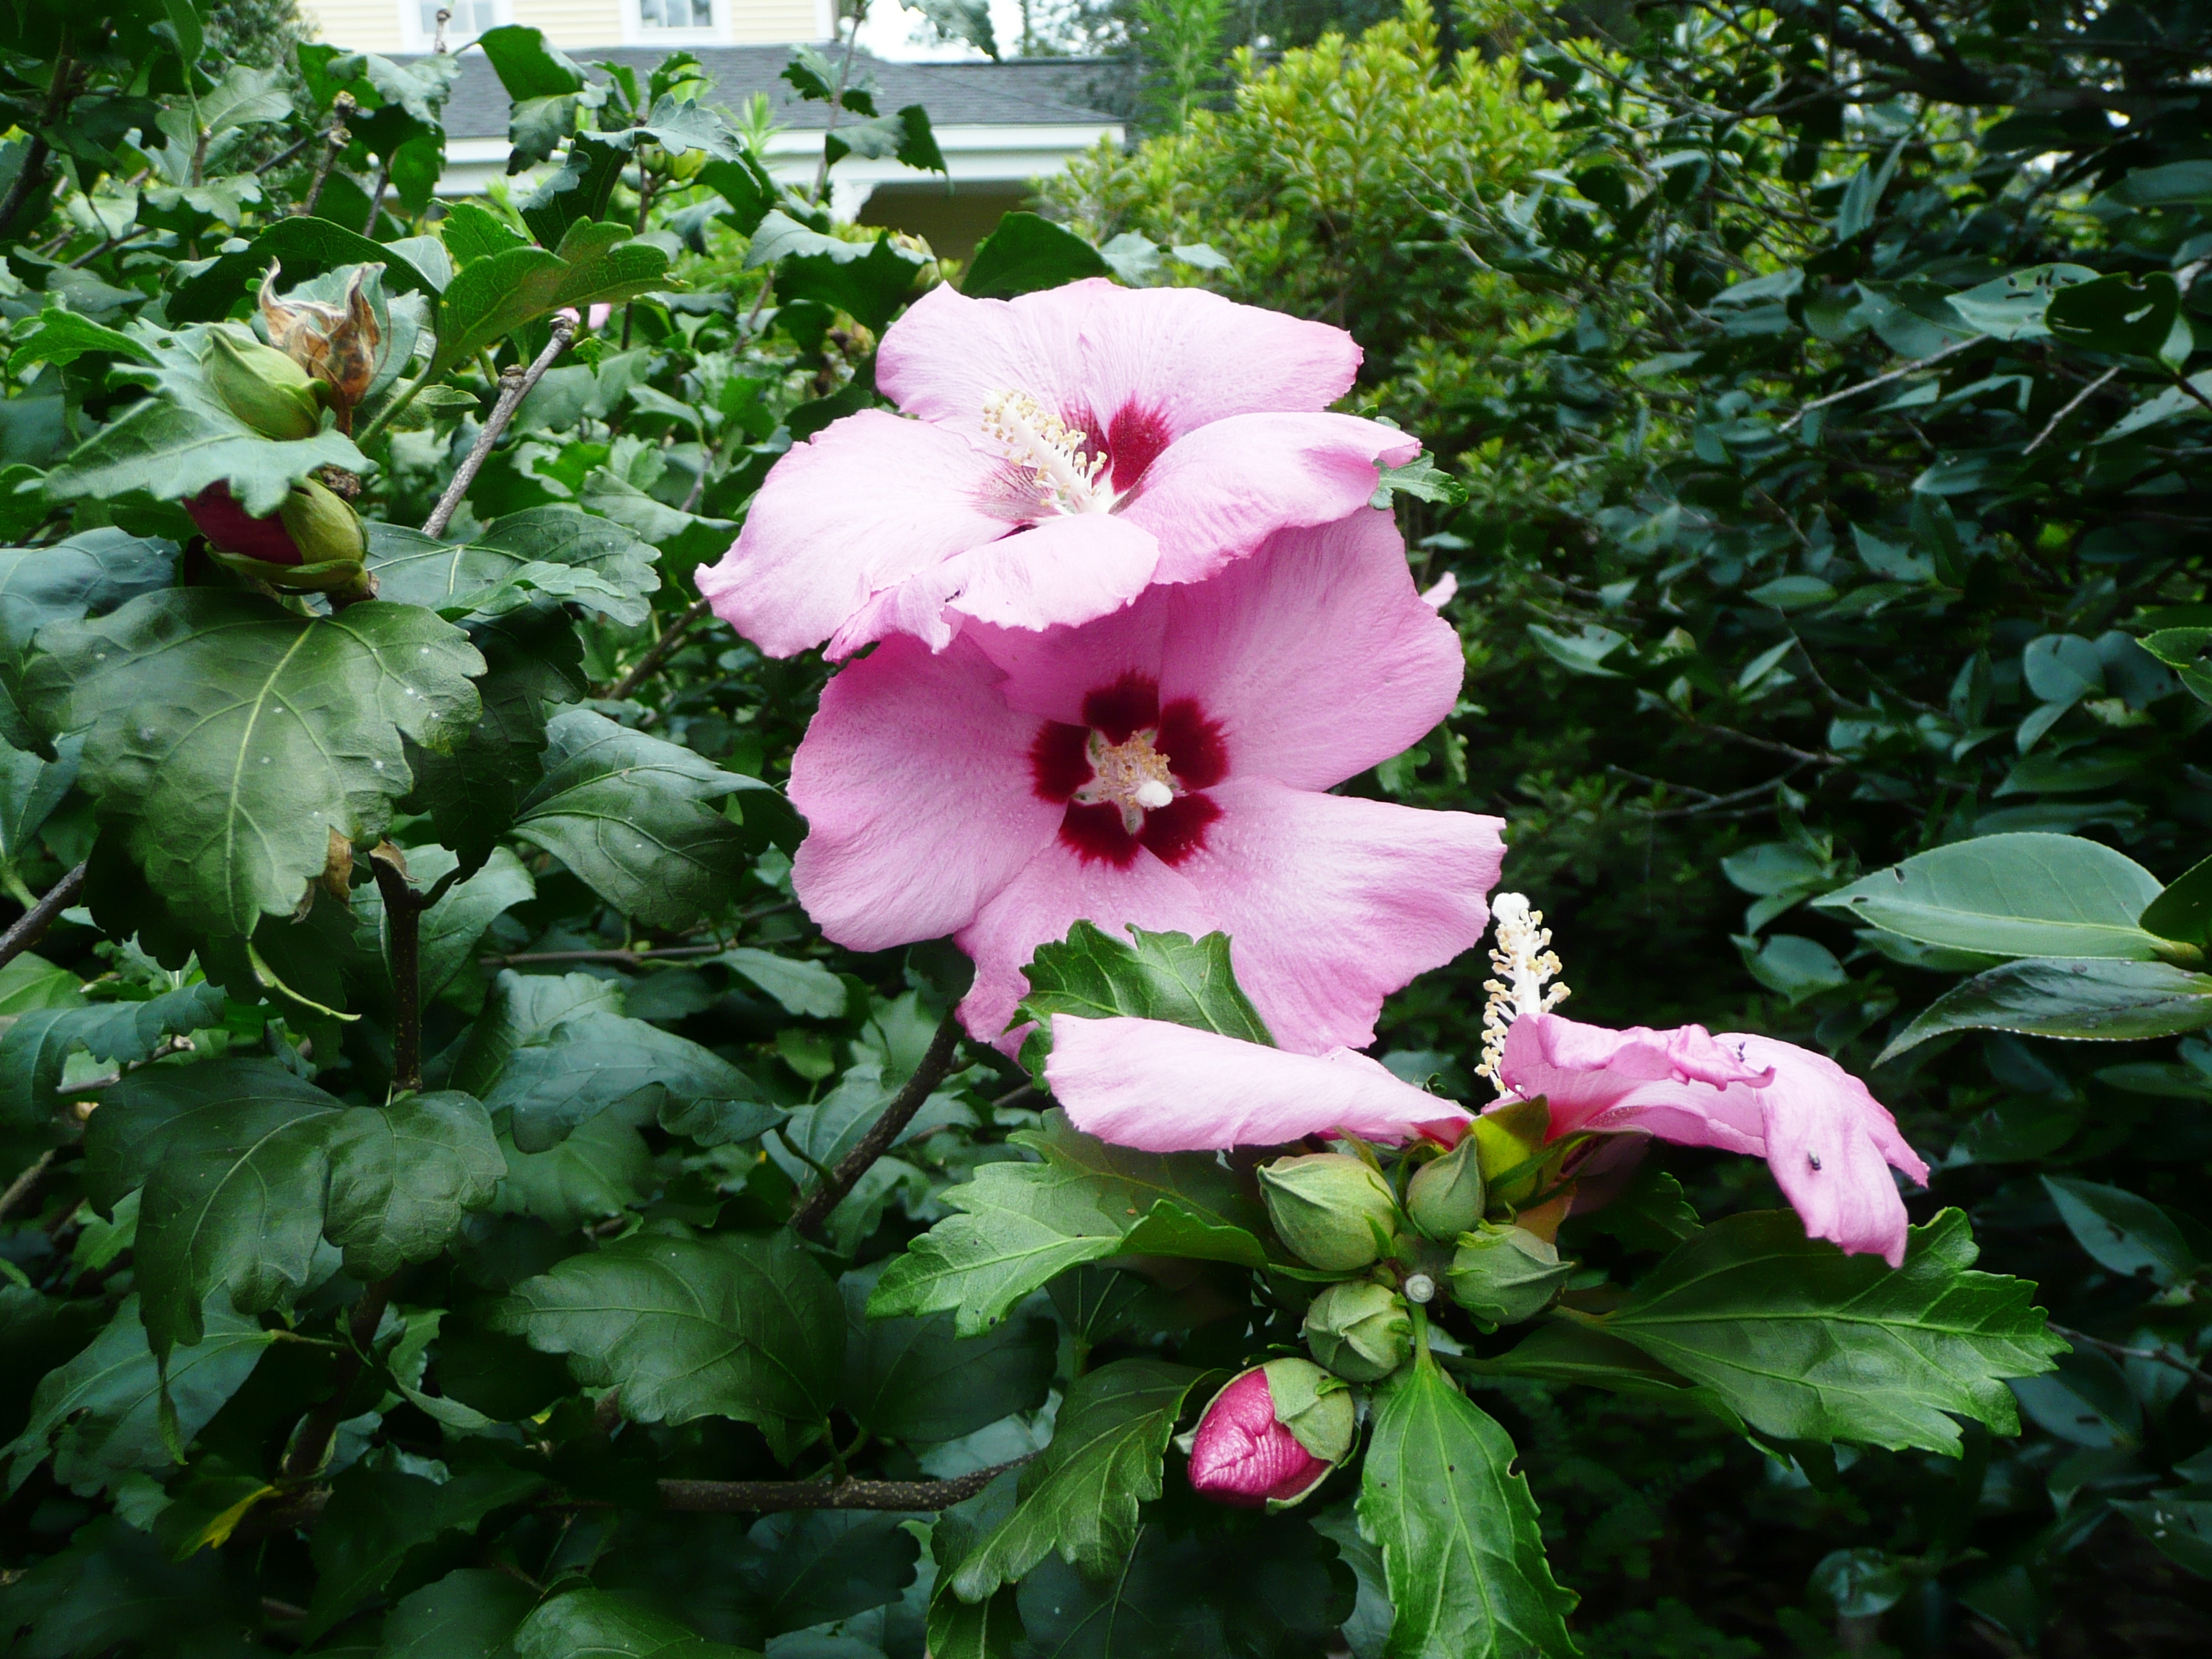 Try althea for summer color - LSU AgCenter